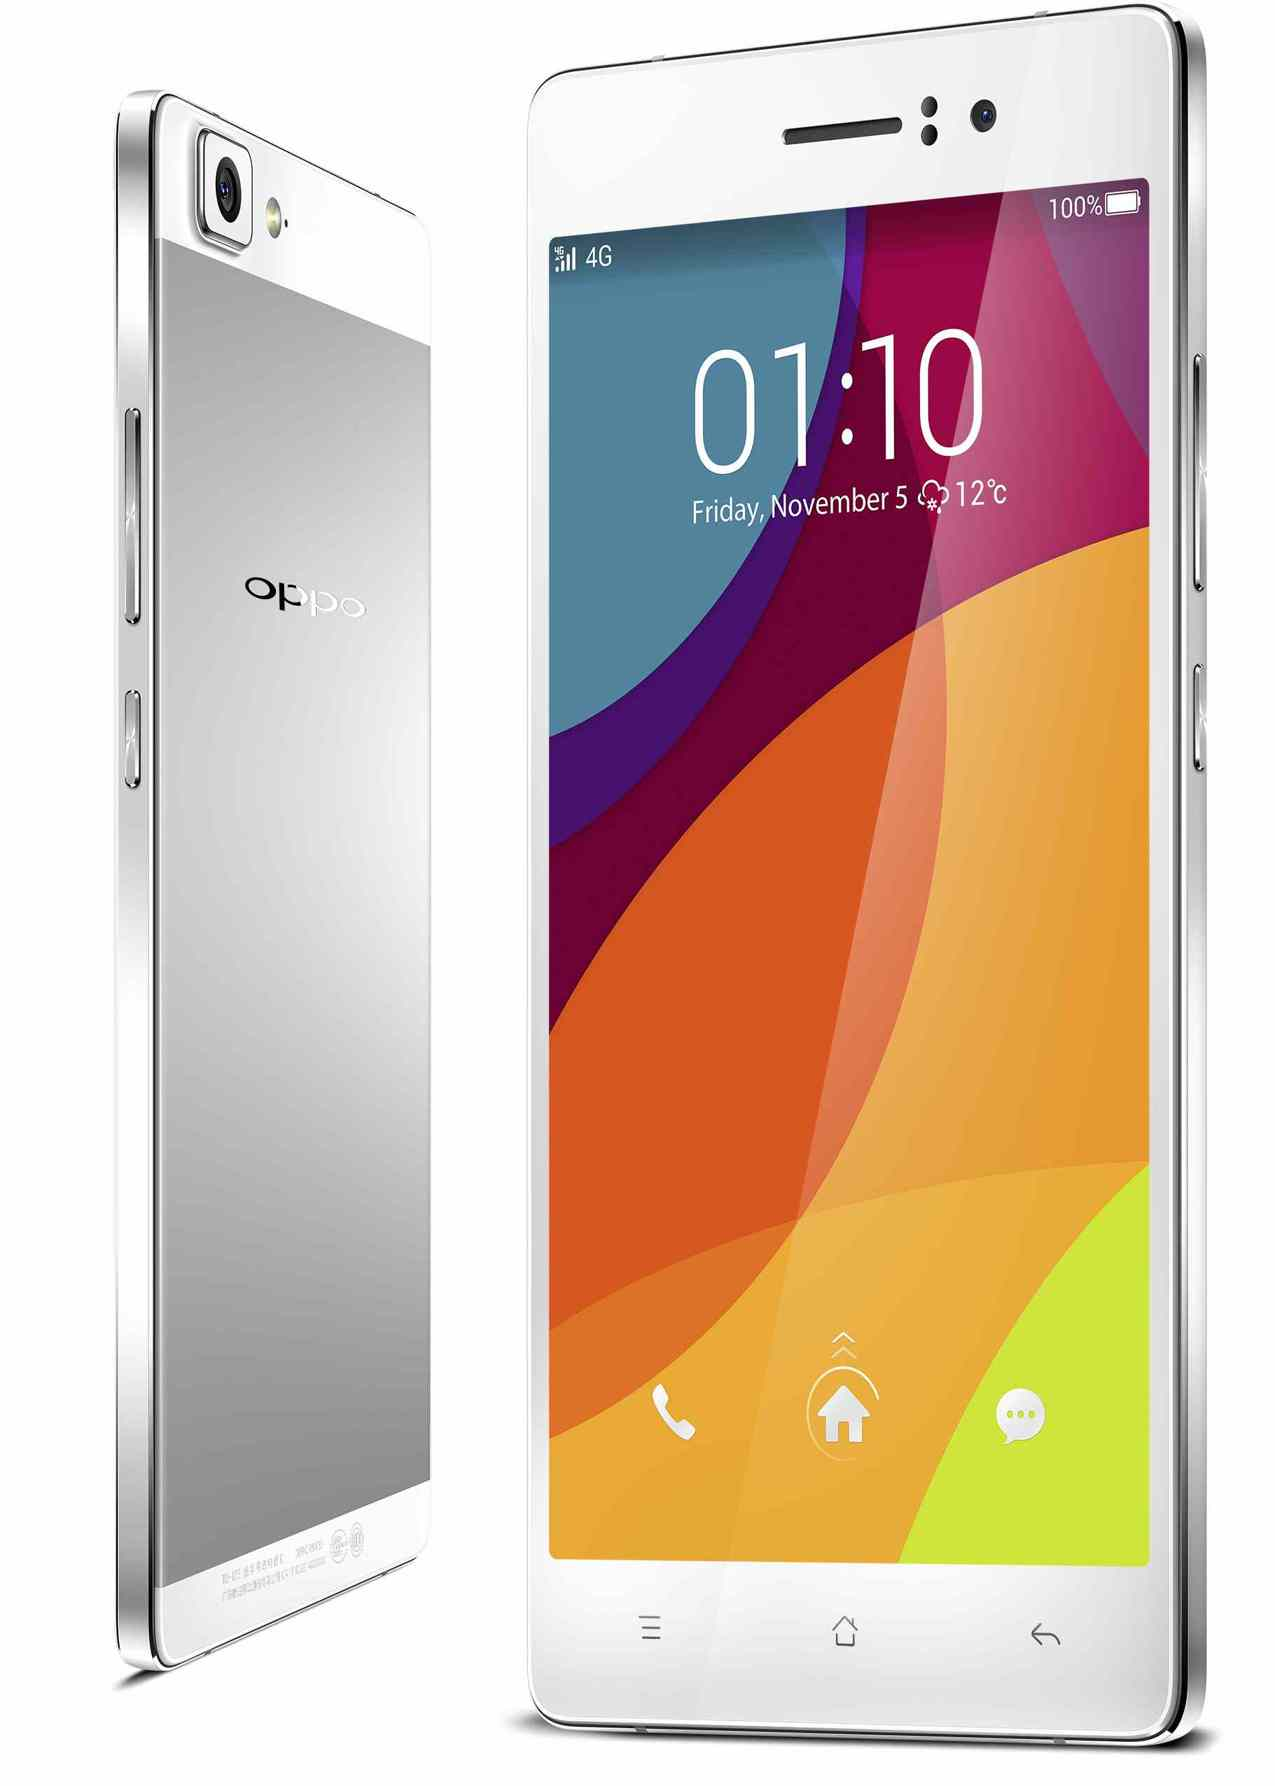 OPPO R5 – The Ultra-Slim Smartphone Coming Soon In India; Expected Price < INR 30k.